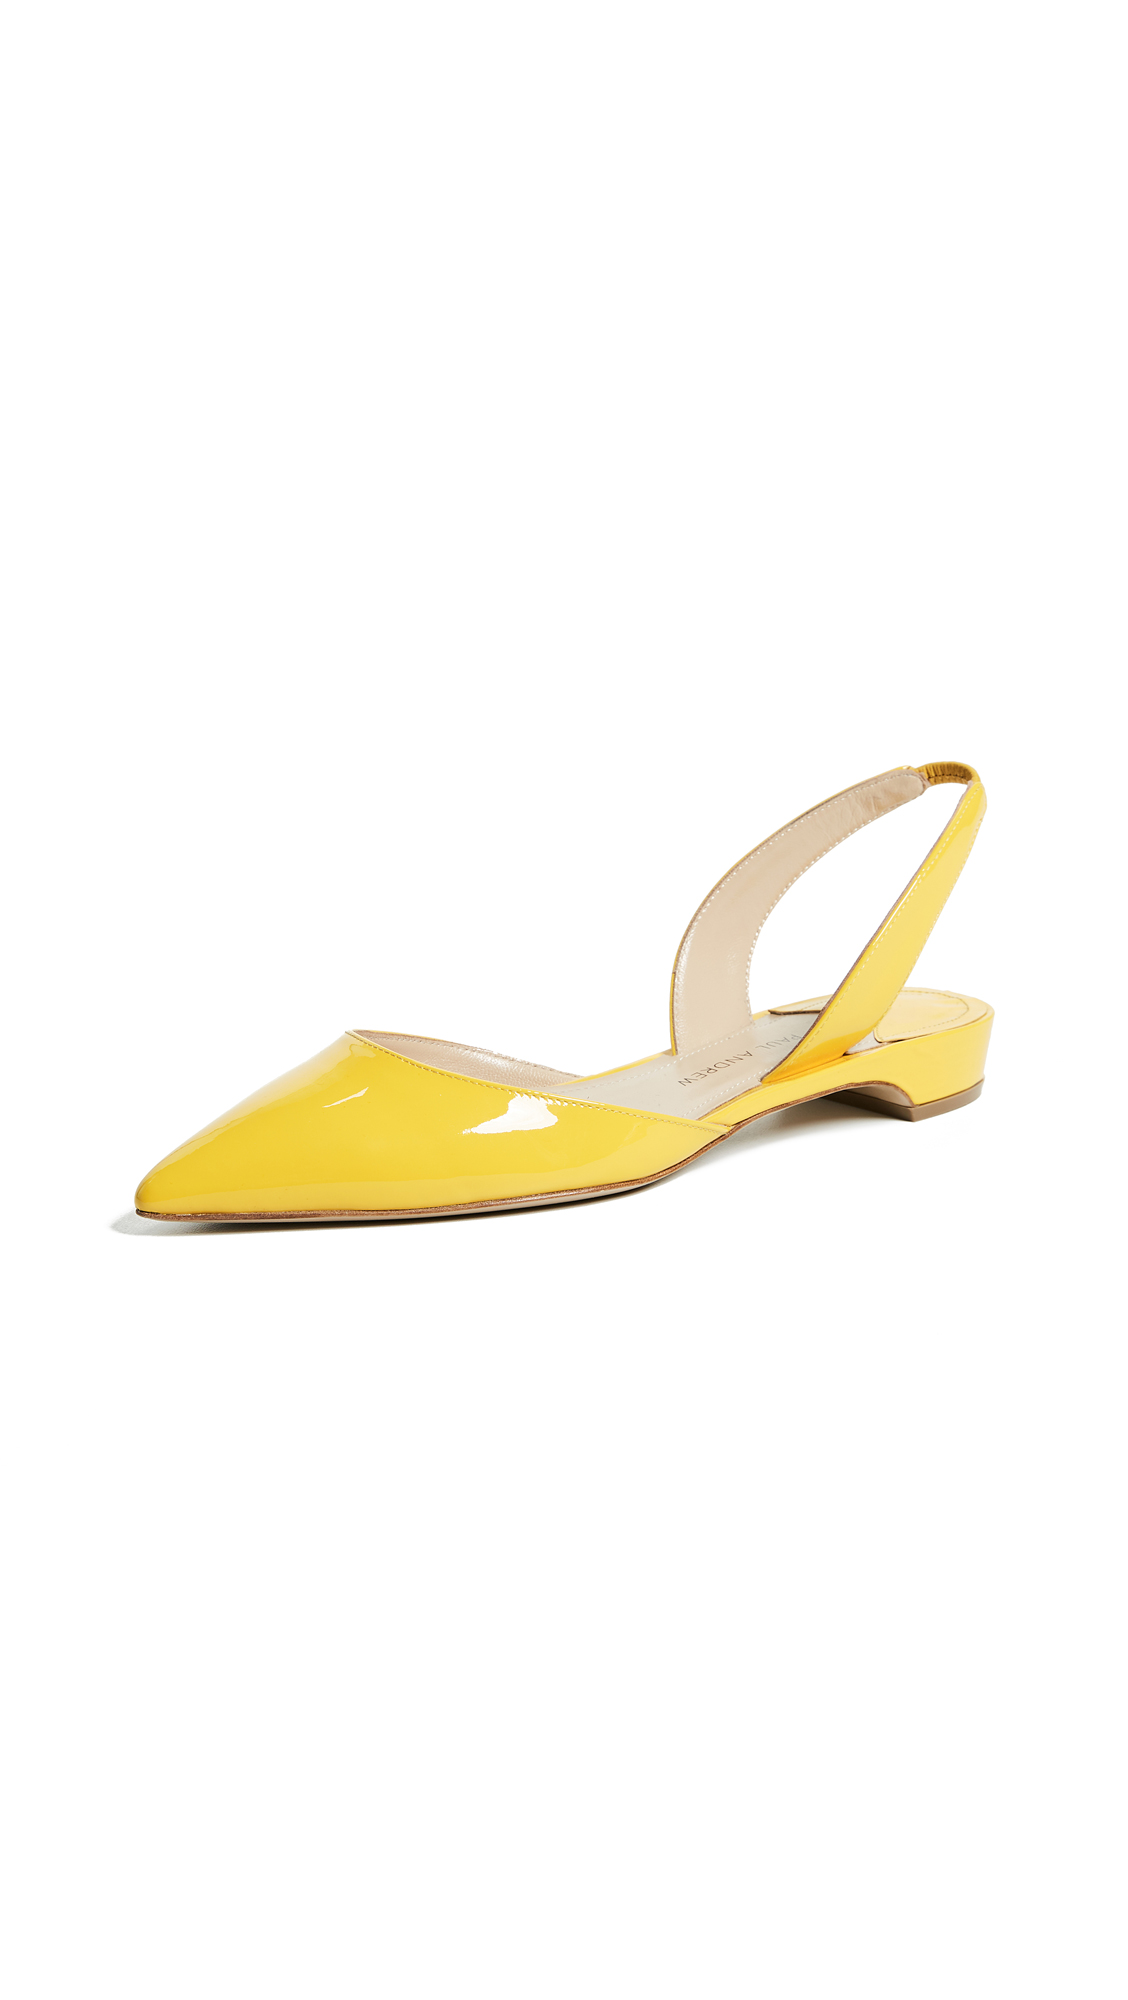 Paul Andrew Rhea Flats - Lemon